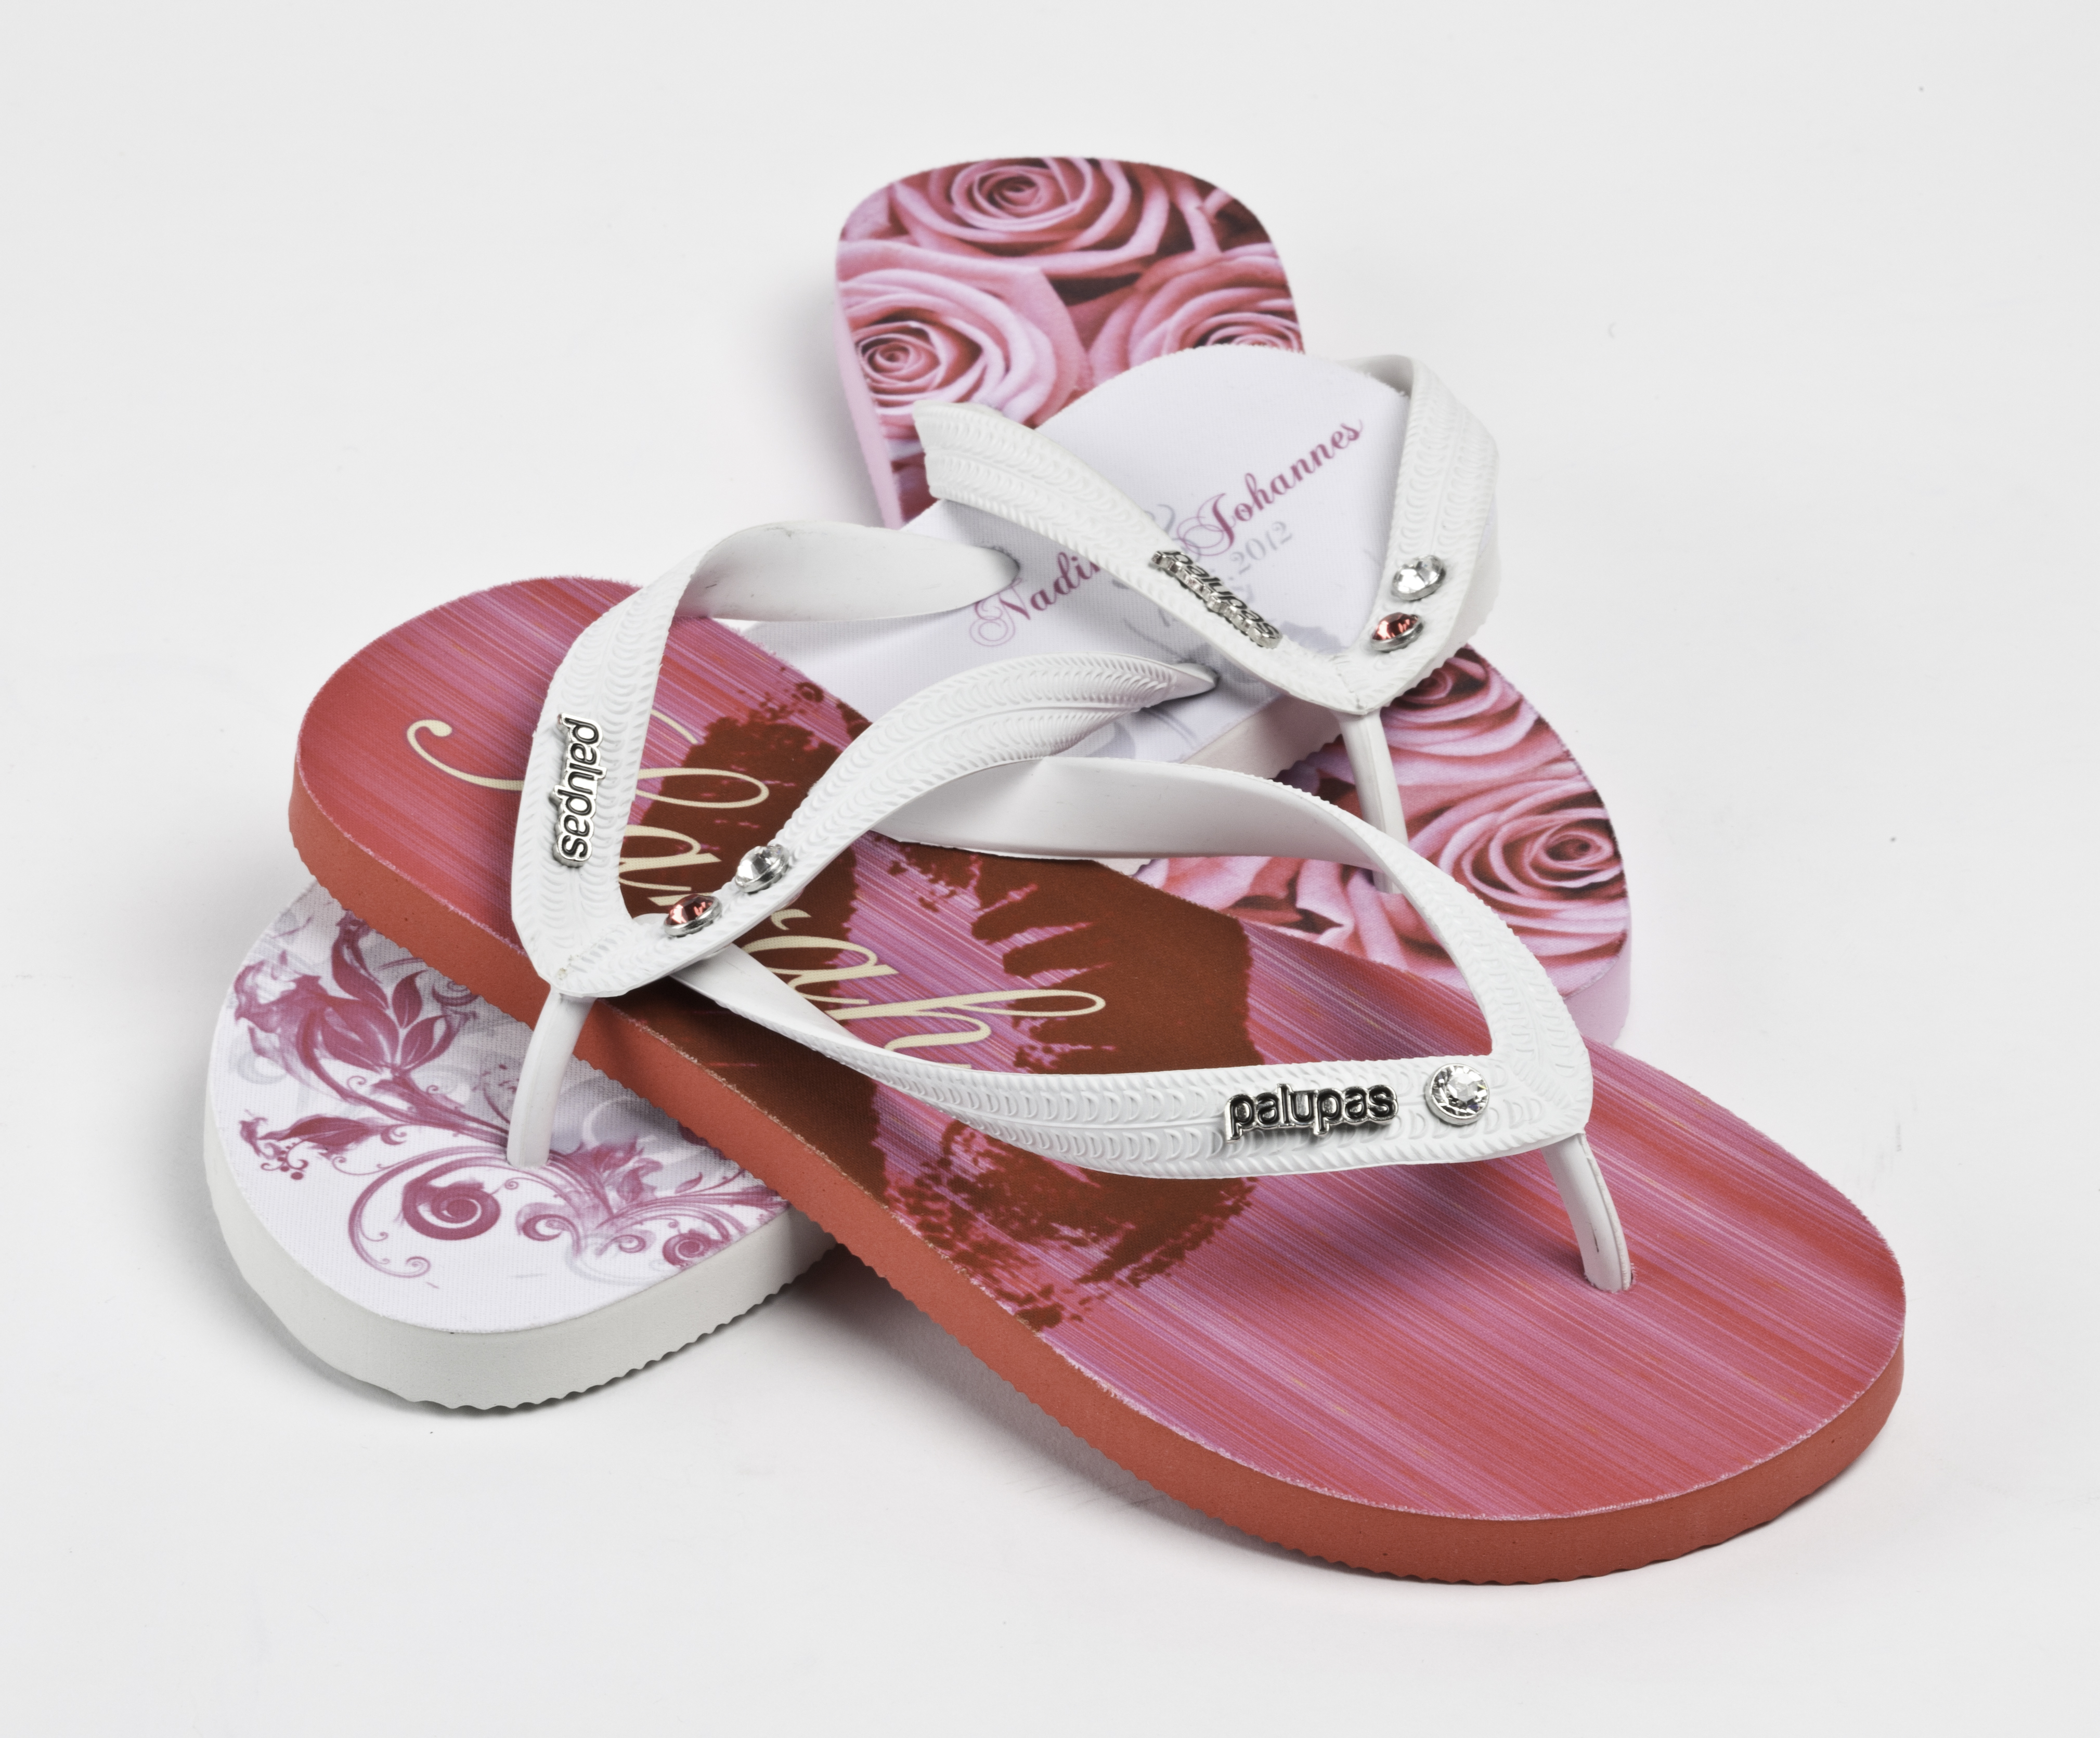 a7e3e36f7 Buying Flip Flops in bulk for Weddings and Corporate Events